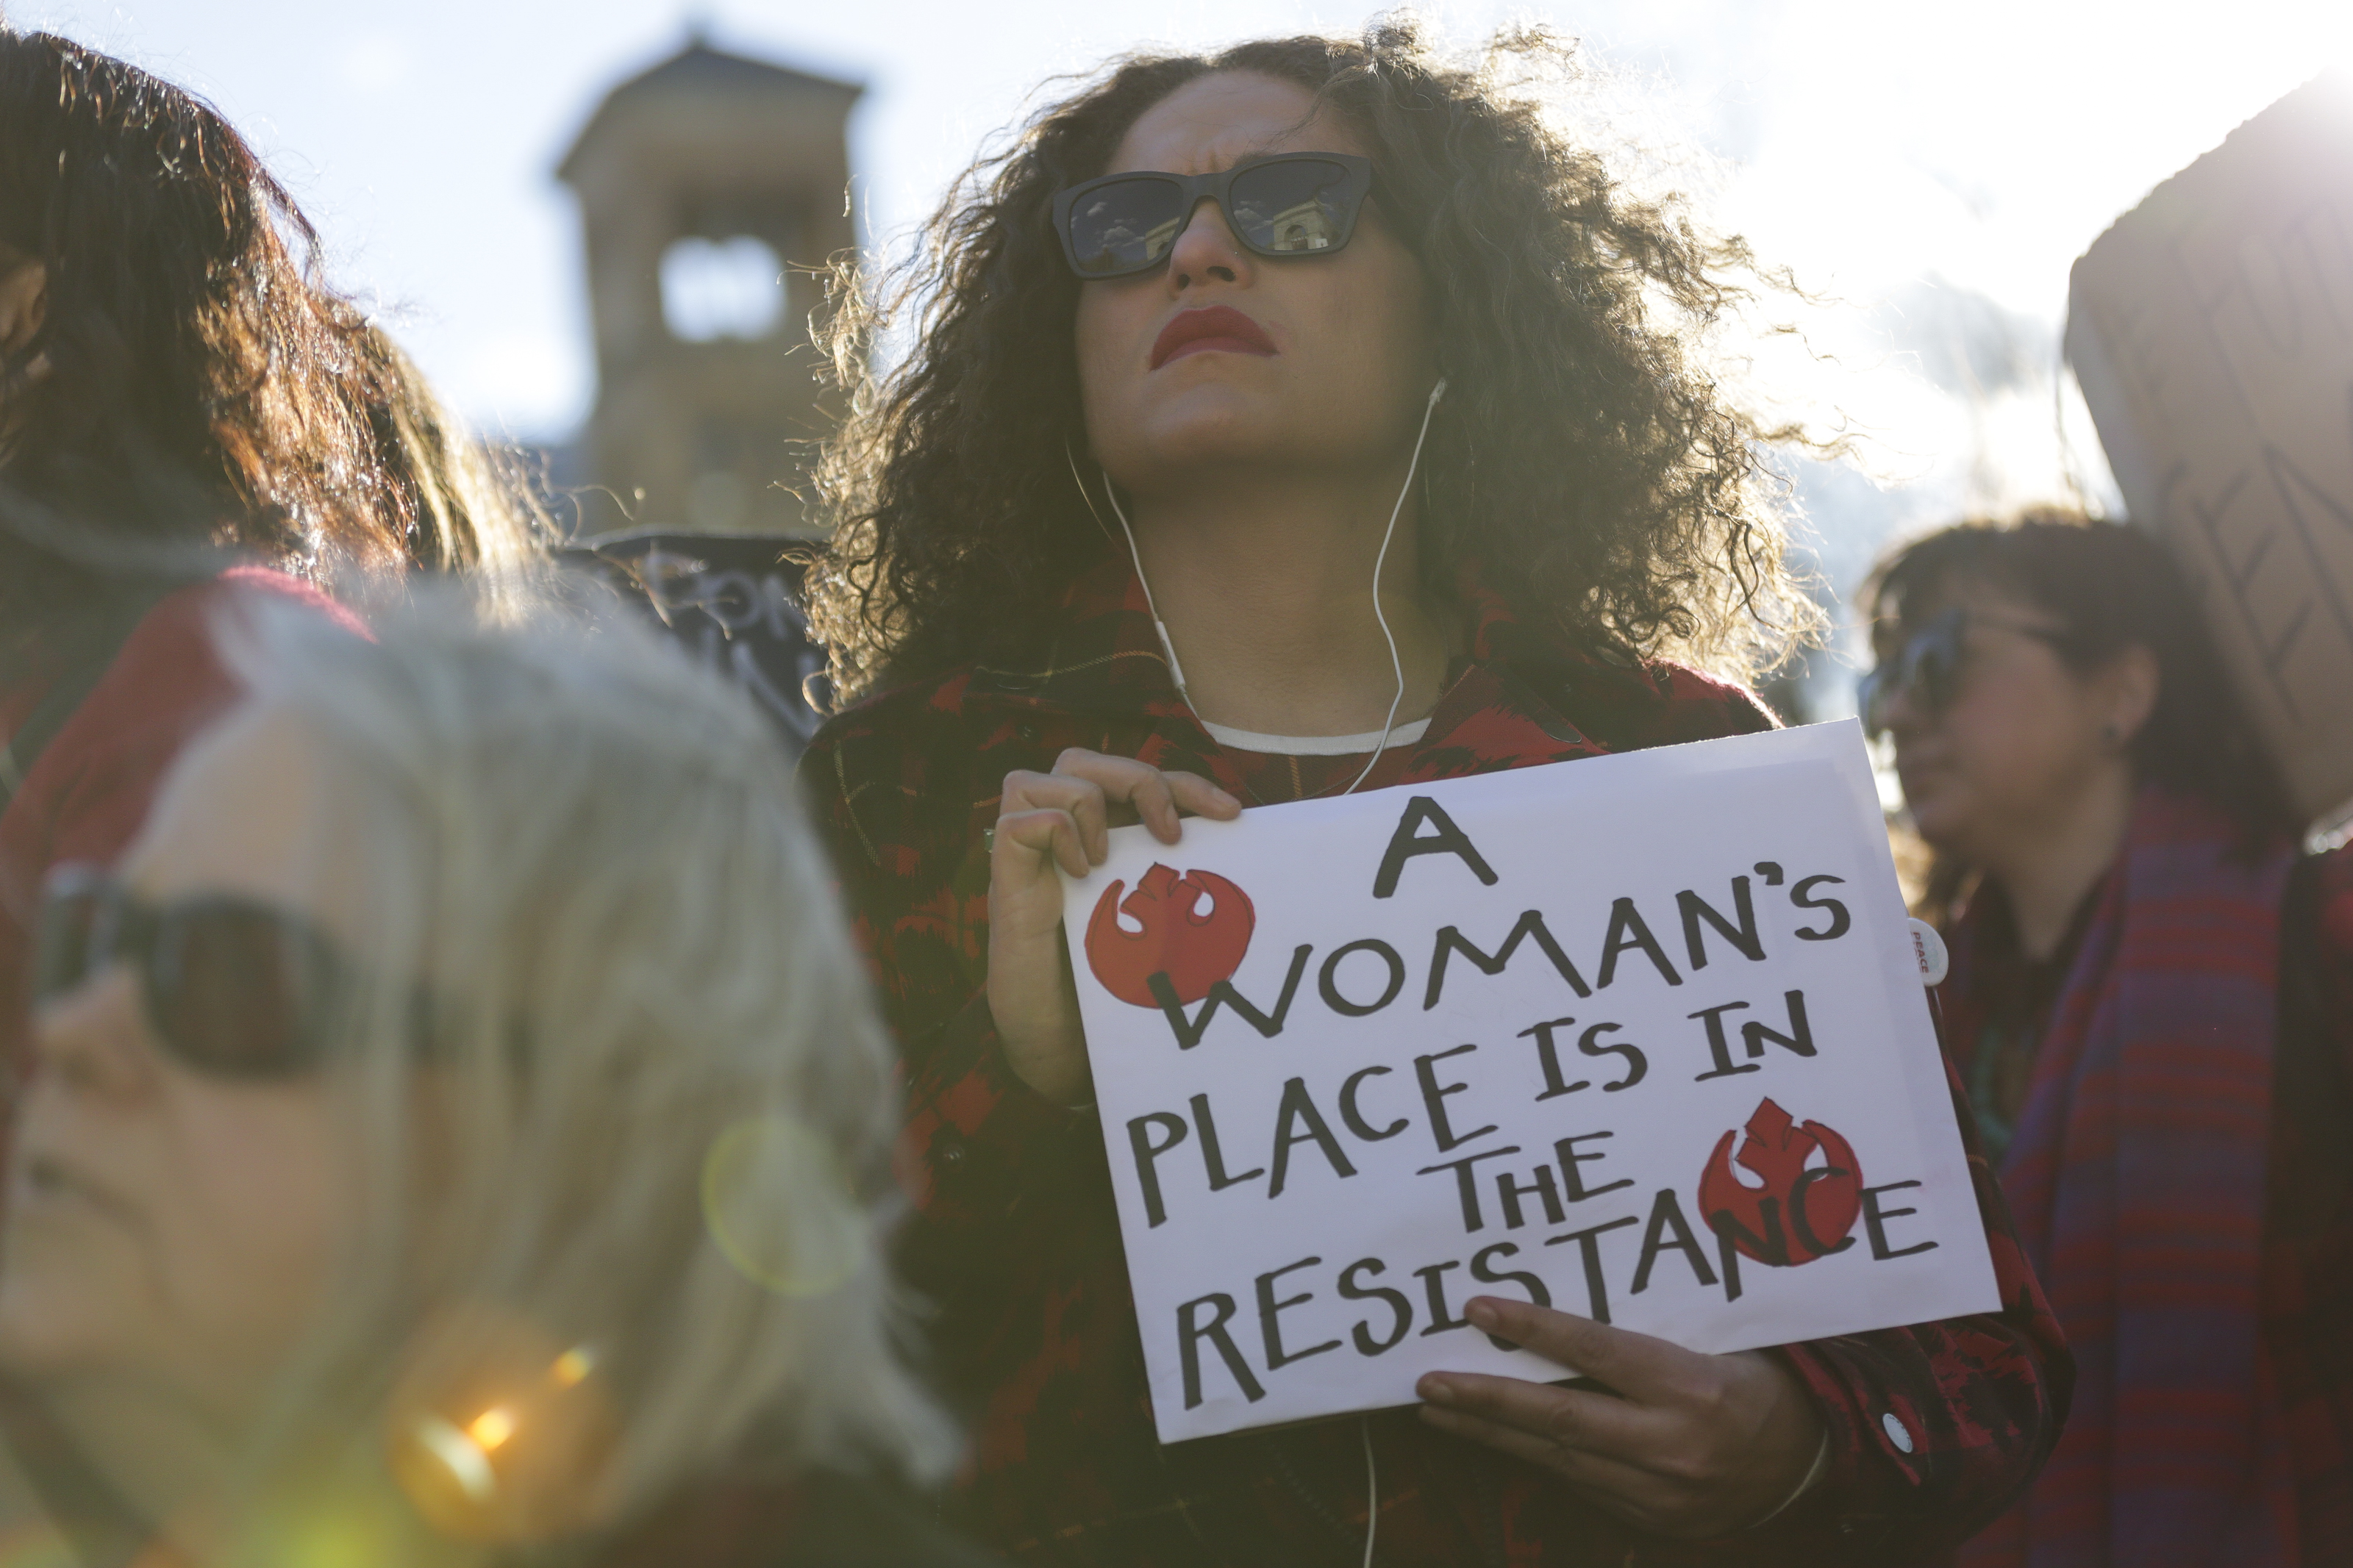 A demonstrator holds a sign while protesting during the Day Without a Woman strike at Washington Square Park in New York, U.S., on Wednesday, March 8, 2017. Some women stayed home from work, joined rallies or wore red to demonstrate their economic clout Wednesday in the U.S. as part of International Women's Day events held around the globe. The Day Without a Woman protest was put together by organizers of the vast women's marches that drew more than 1 million Americans into the streets the day after President Donald Trump's inauguration. Photographer: Jeenah Moon/Bloomberg via Getty Images